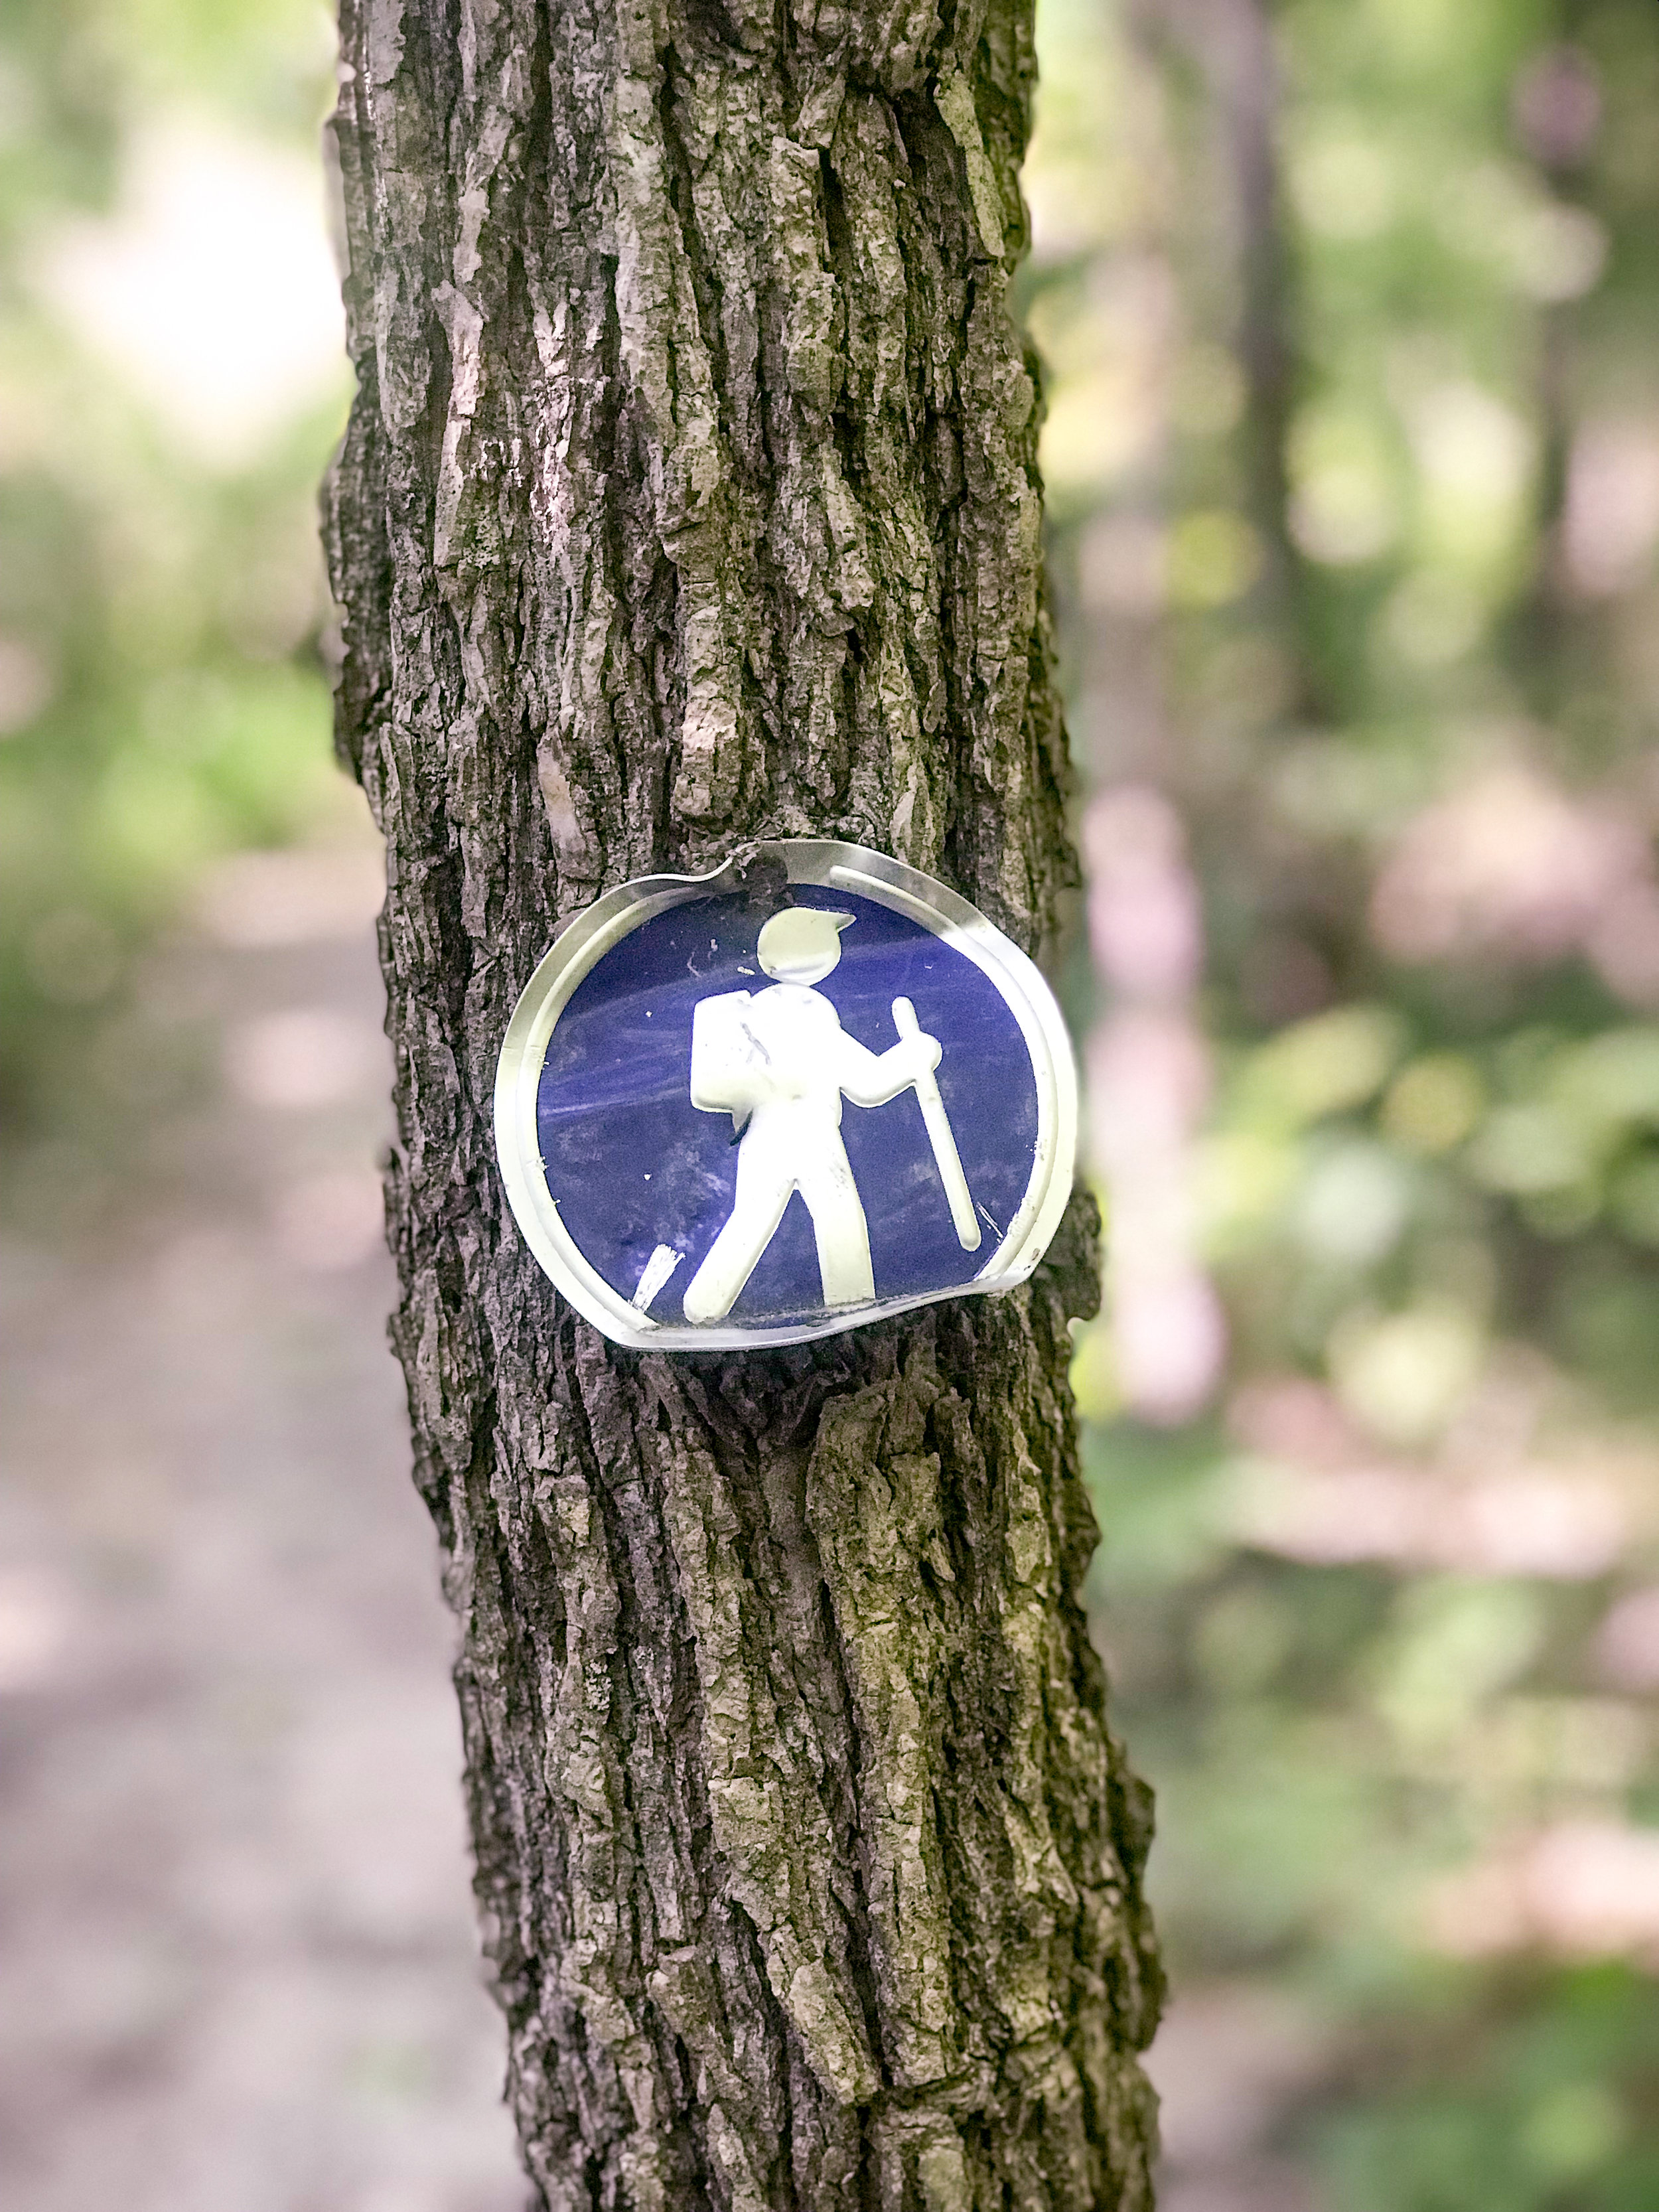 A hiking trail marker on one of the trails.